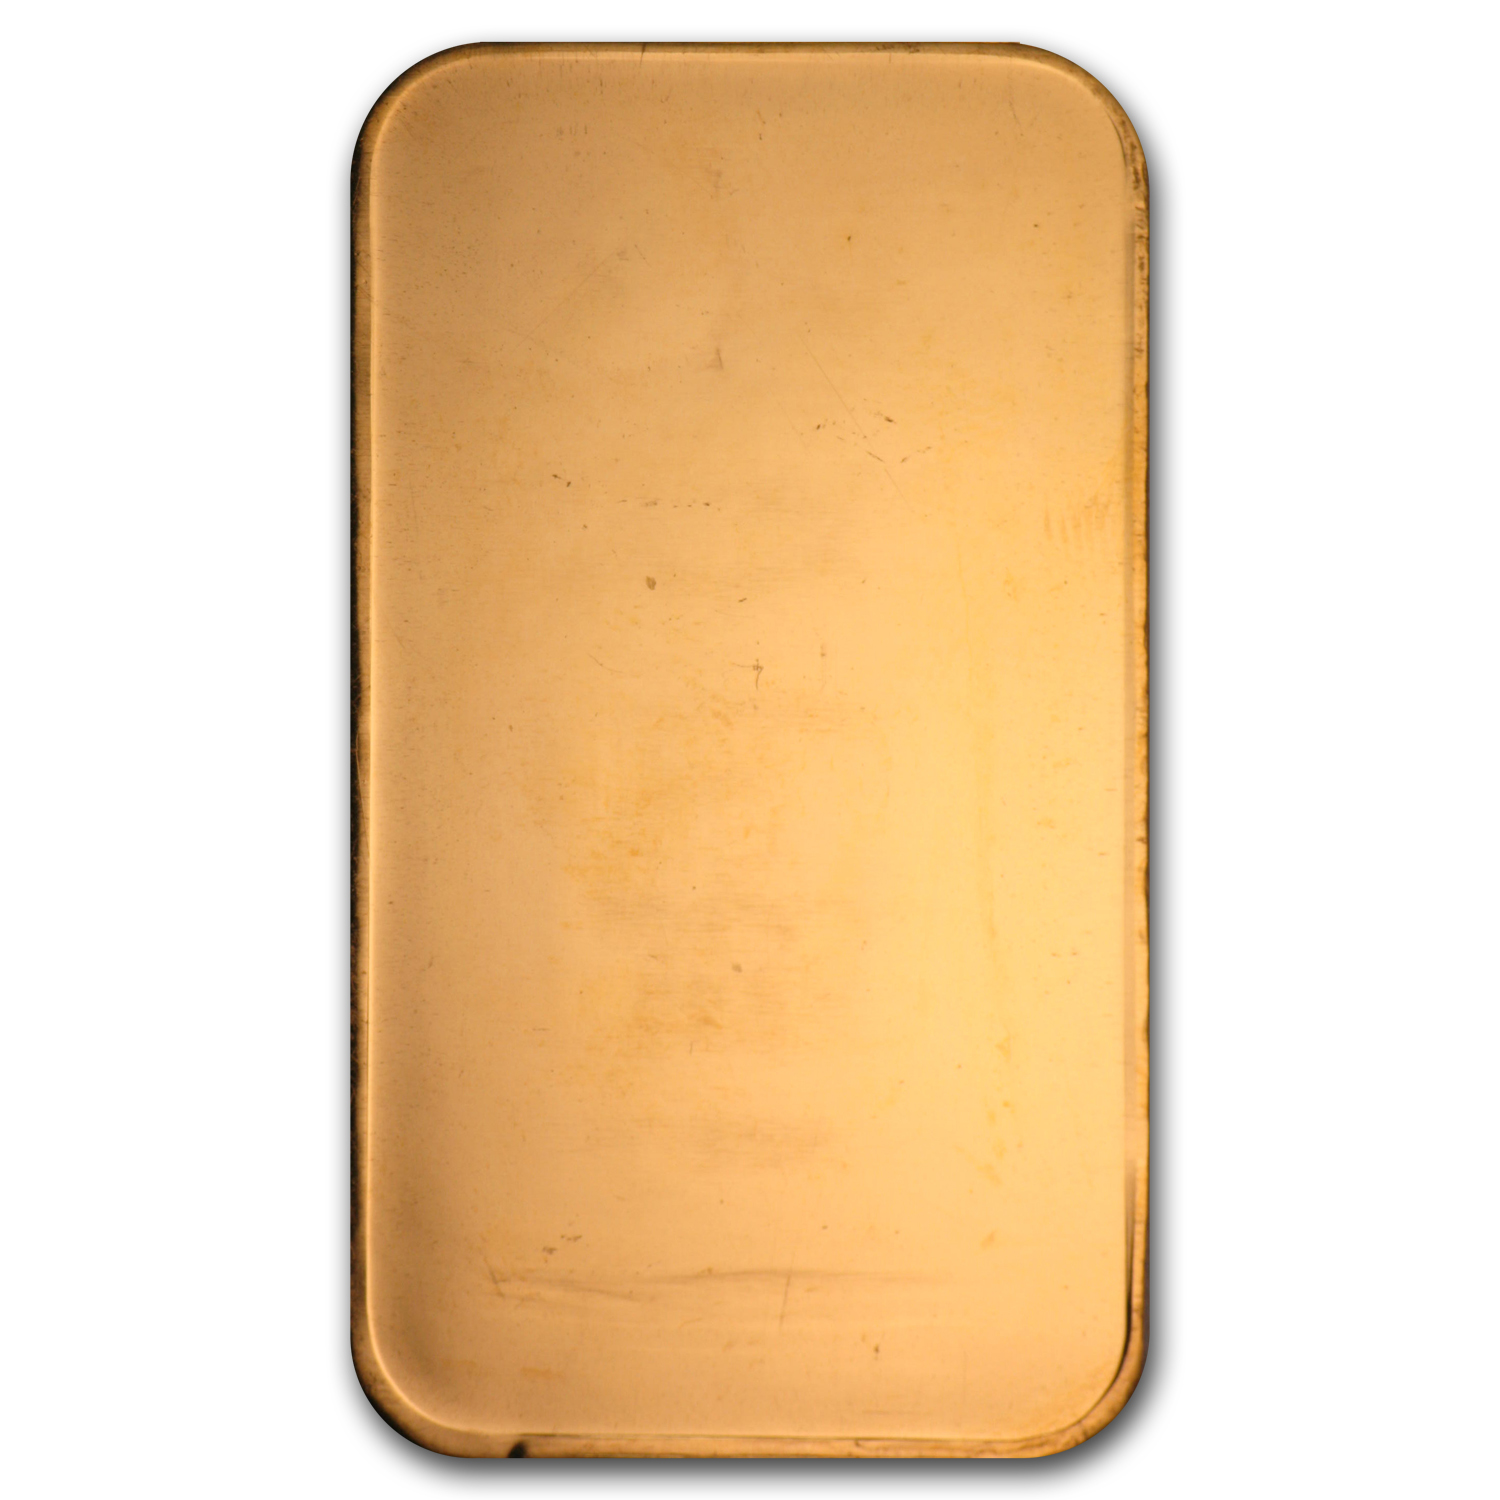 1 oz Gold Bar - Johnson Matthey (Plain Back, No Assay)